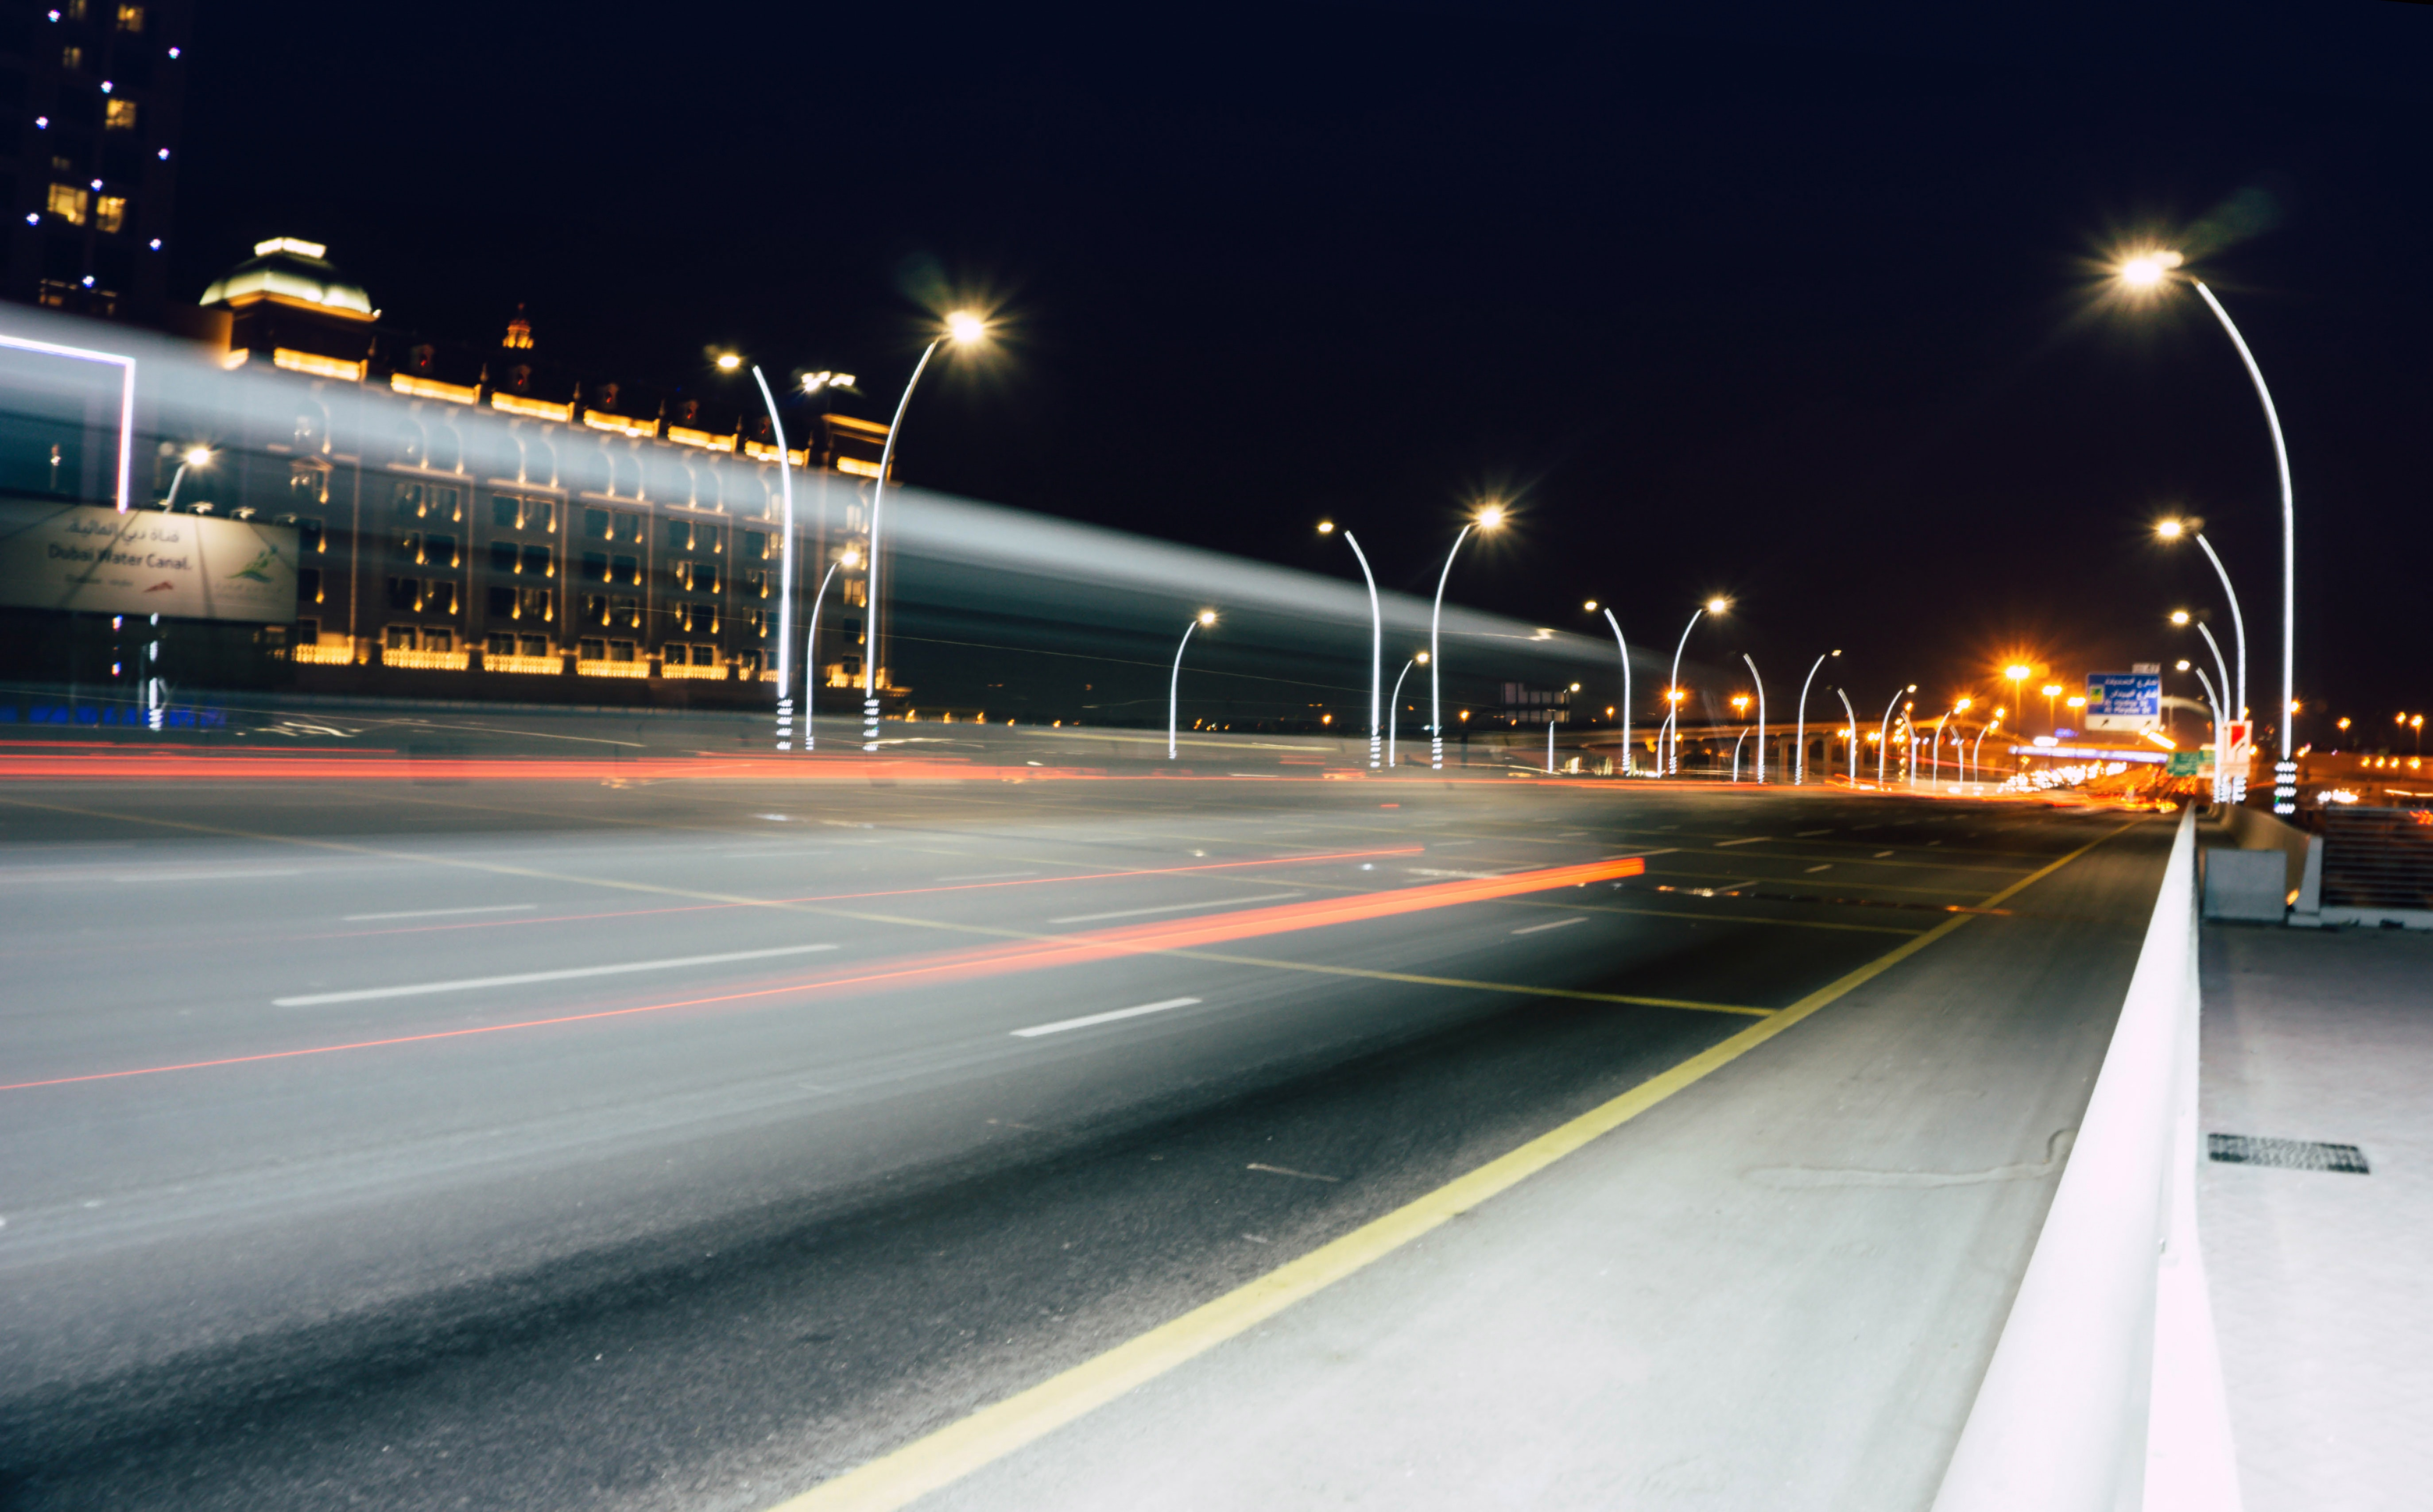 Street lights during nighttime photo